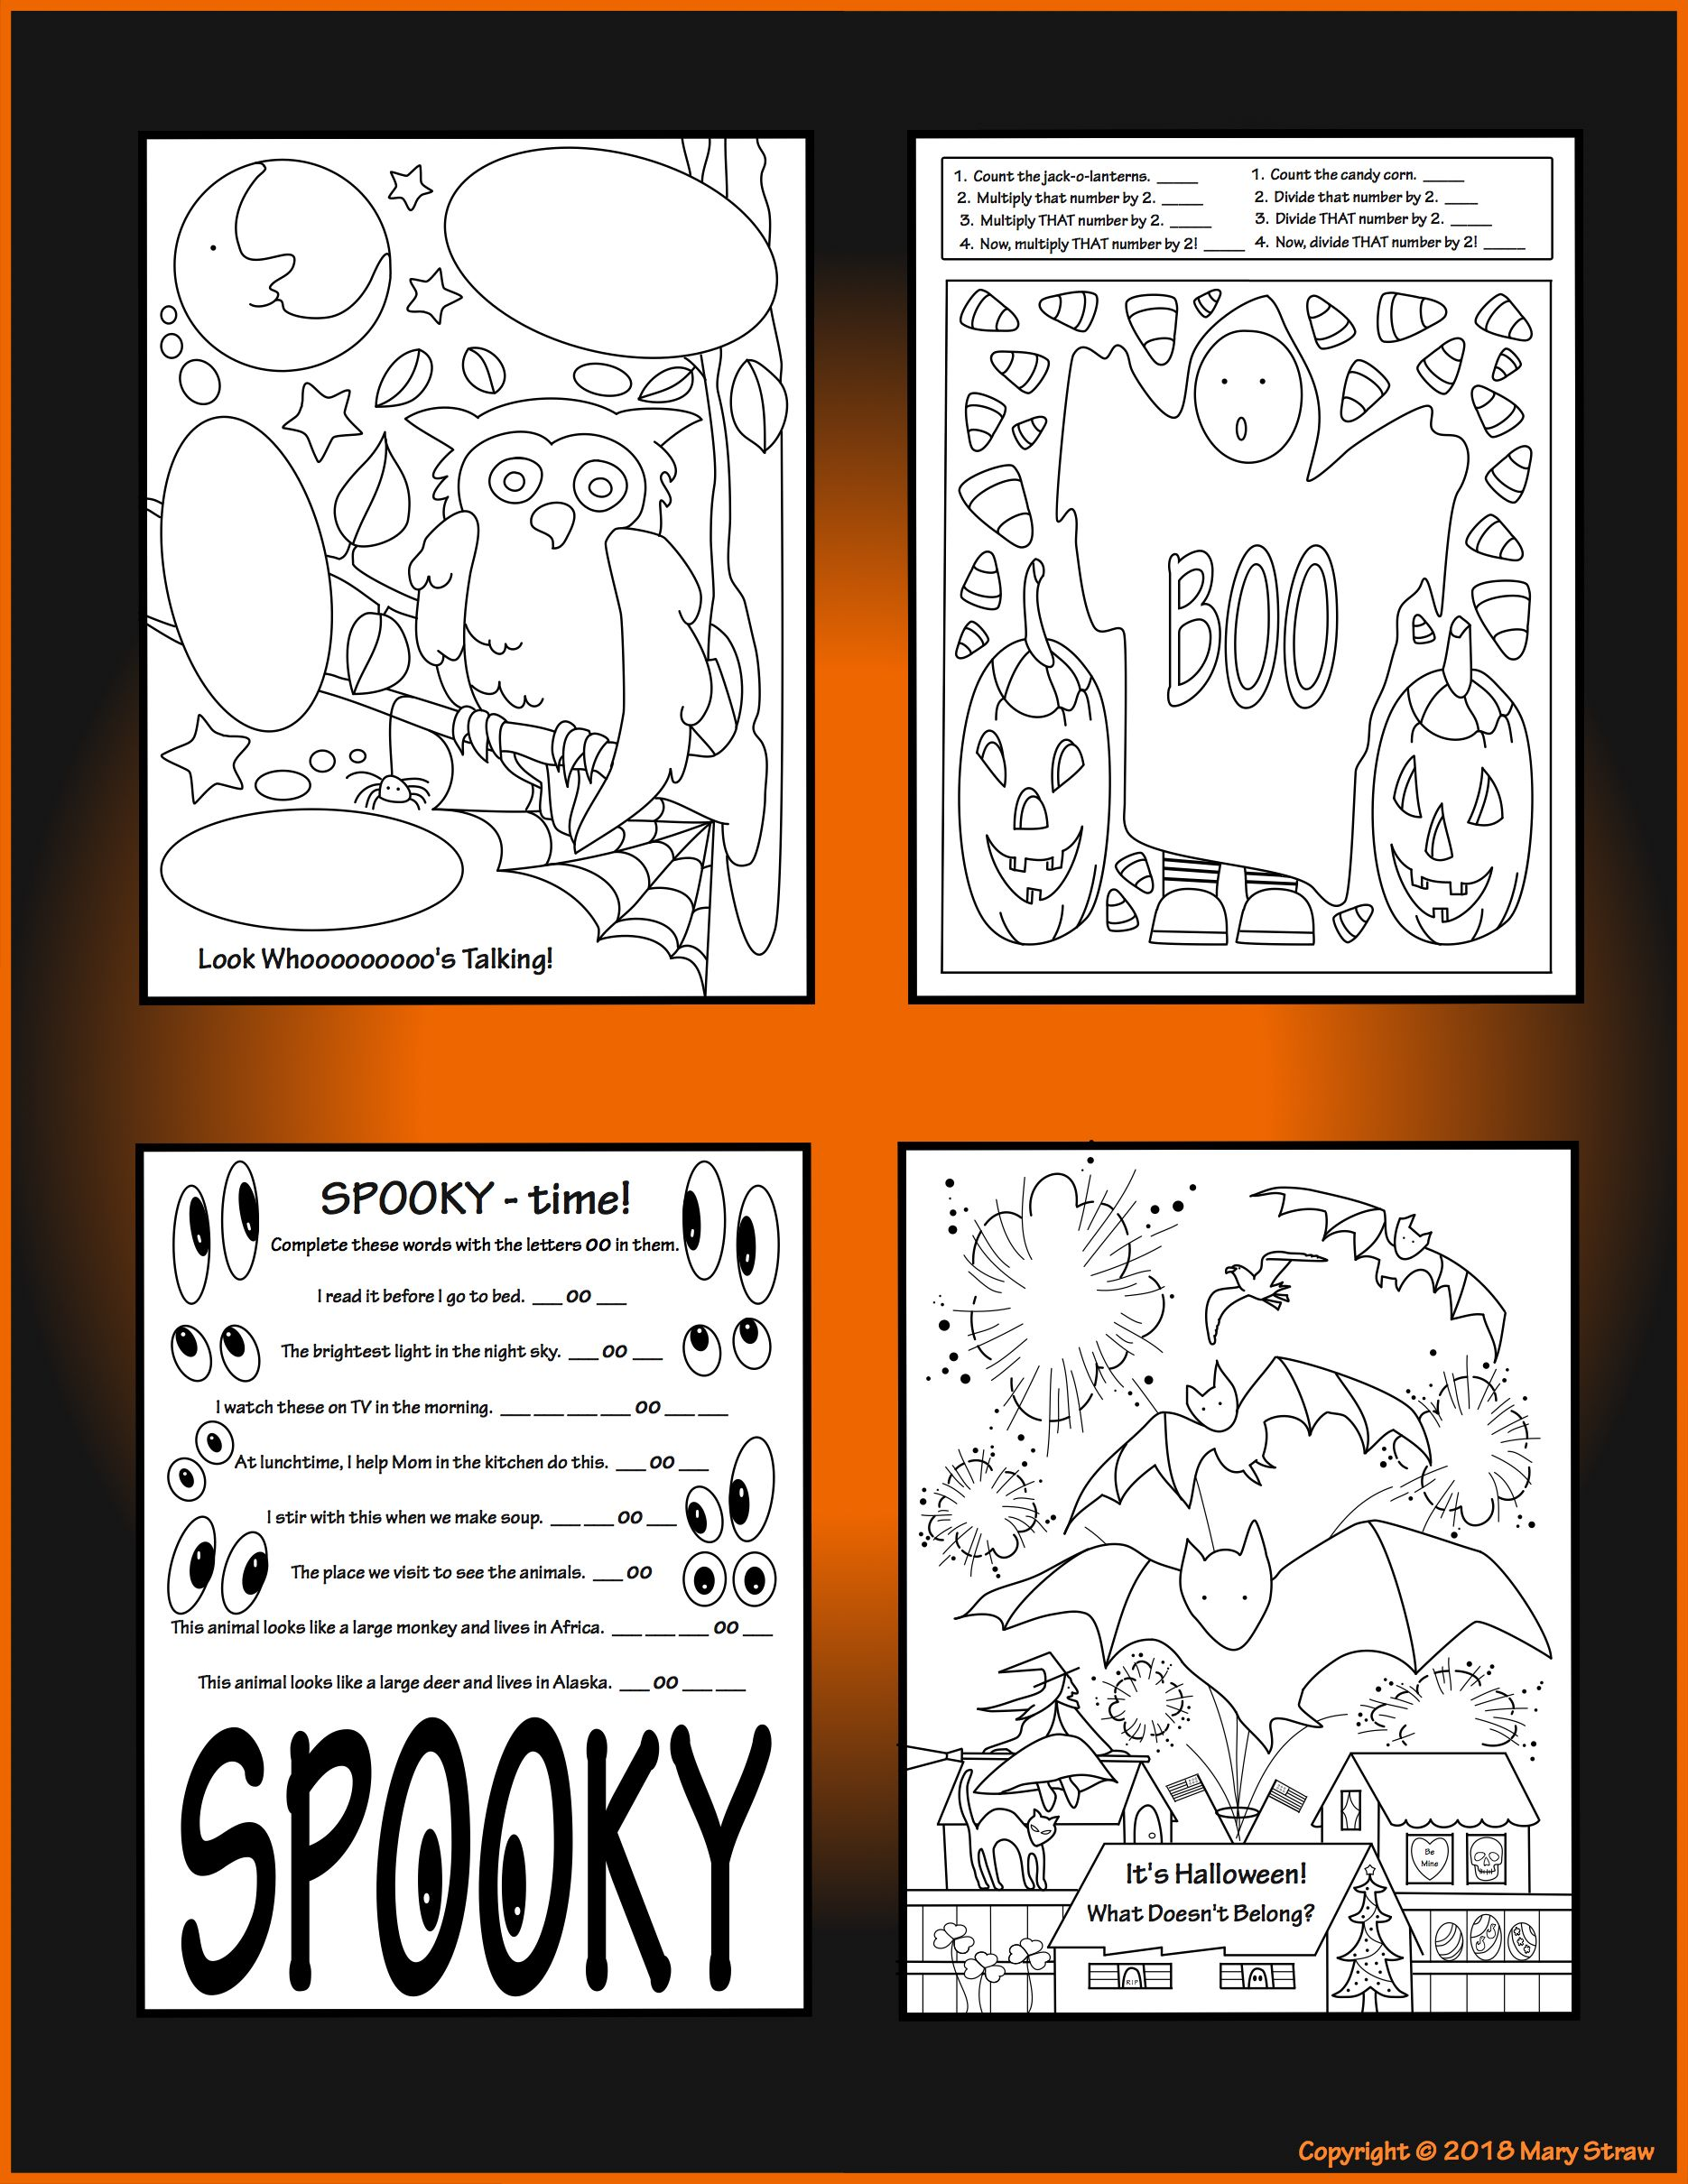 4 Fun More Than Just Coloring Pages For Your Little Monsters What Doesn T Belong Jelly Bean C Halloween Activities Halloween Kindergarten Coloring Pages [ 2420 x 1870 Pixel ]